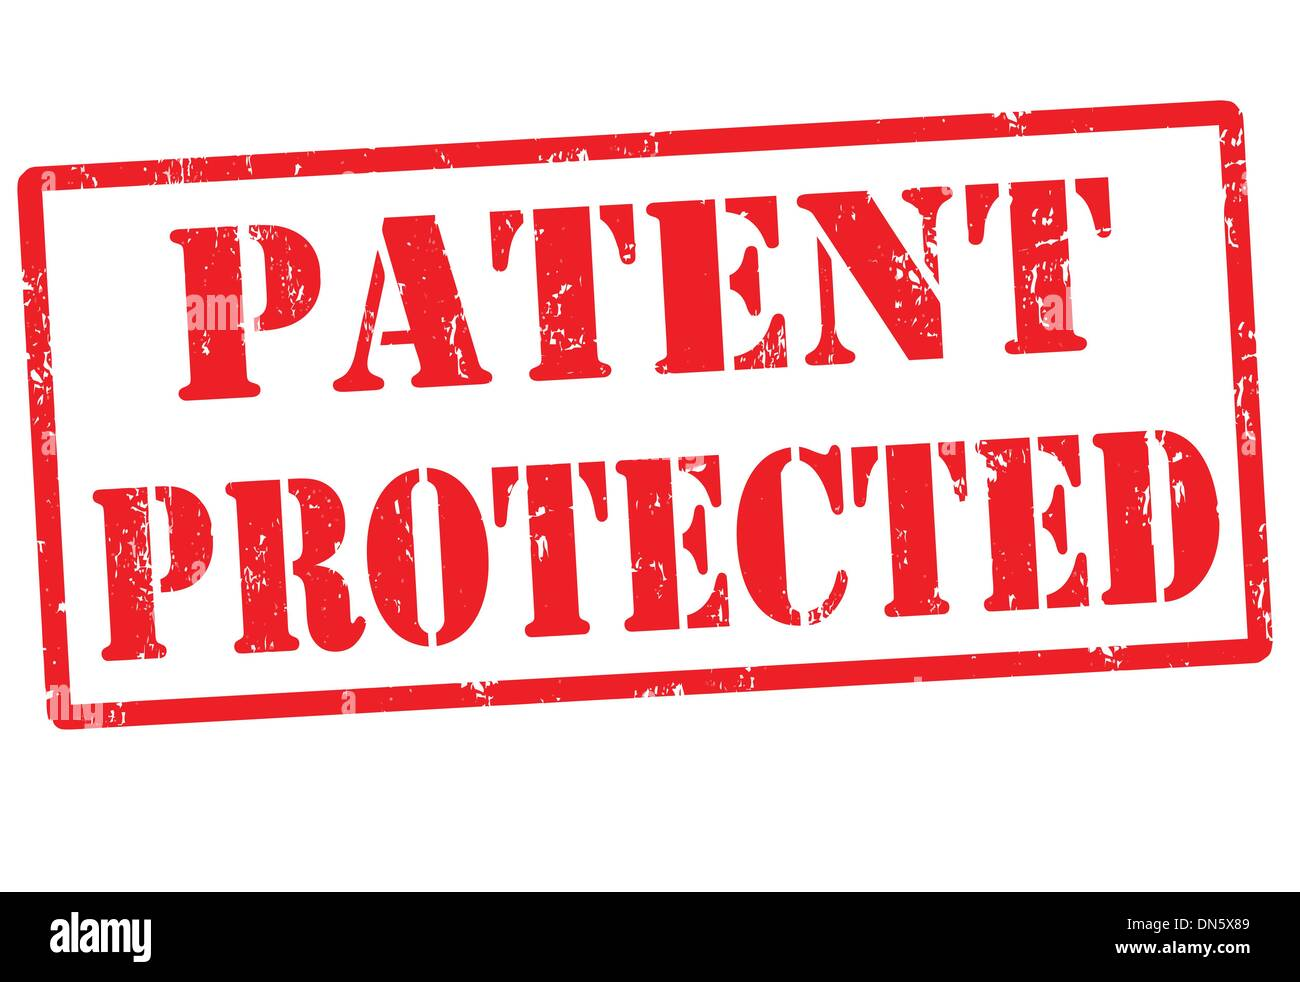 Patent protected stamp - Stock Image